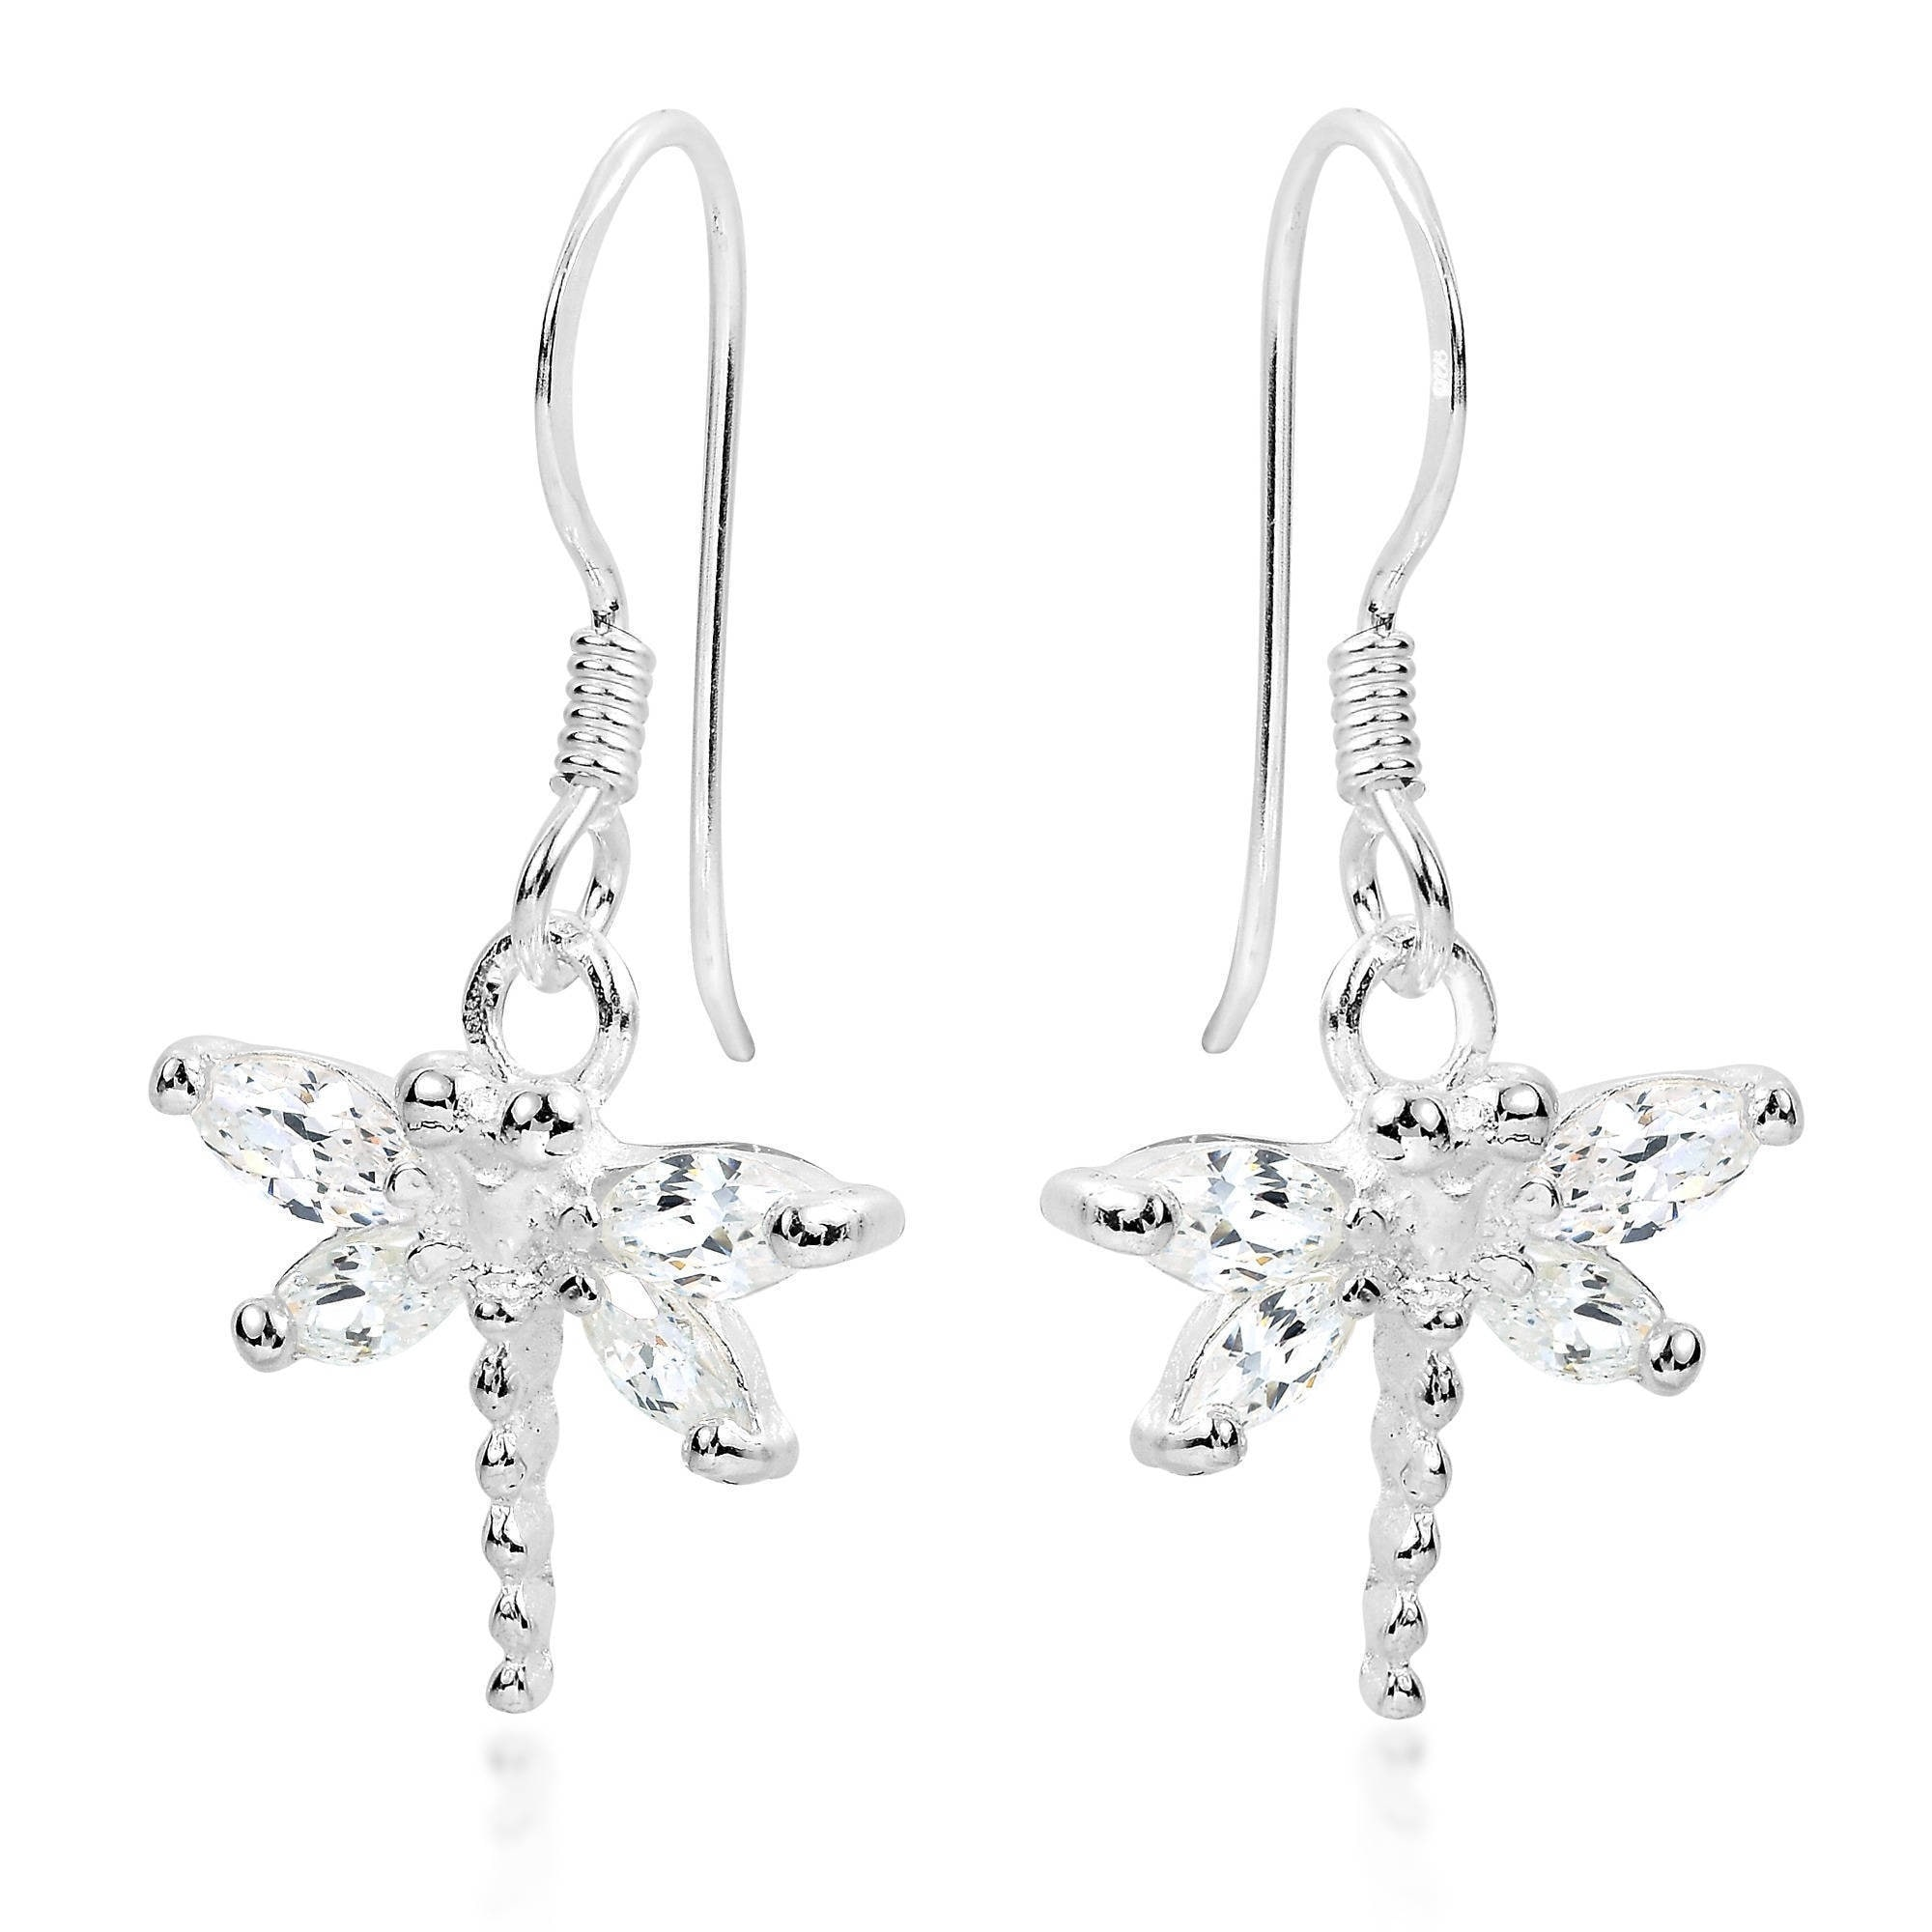 Beautiful Handmade Thai Design Dragonfly Earrings 925 Sterling Silver From Thailand pVIFCSc